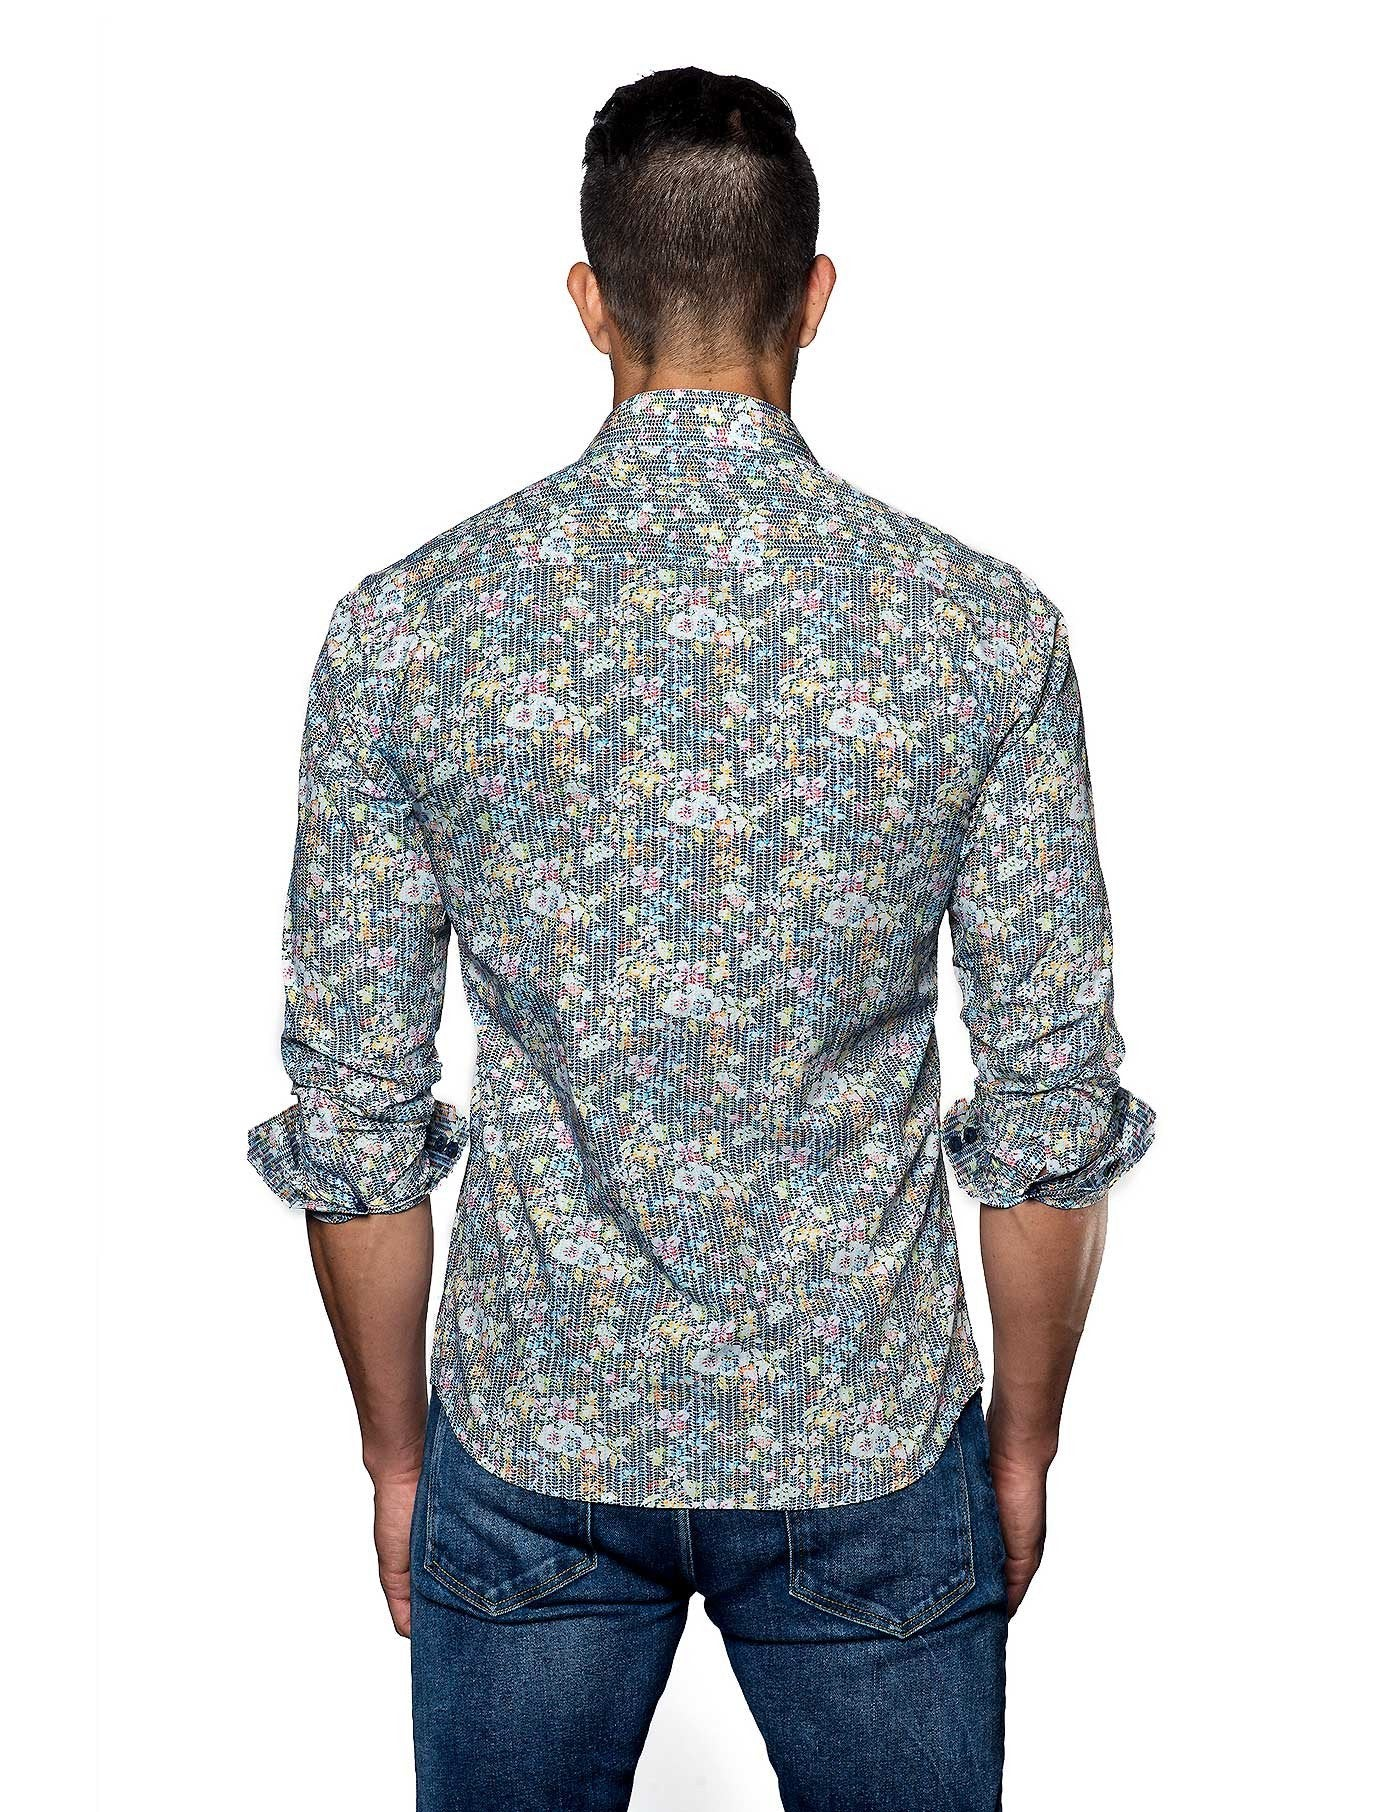 Multicolor Floral Print Shirt for Men - back T-2078 - Jared Lang